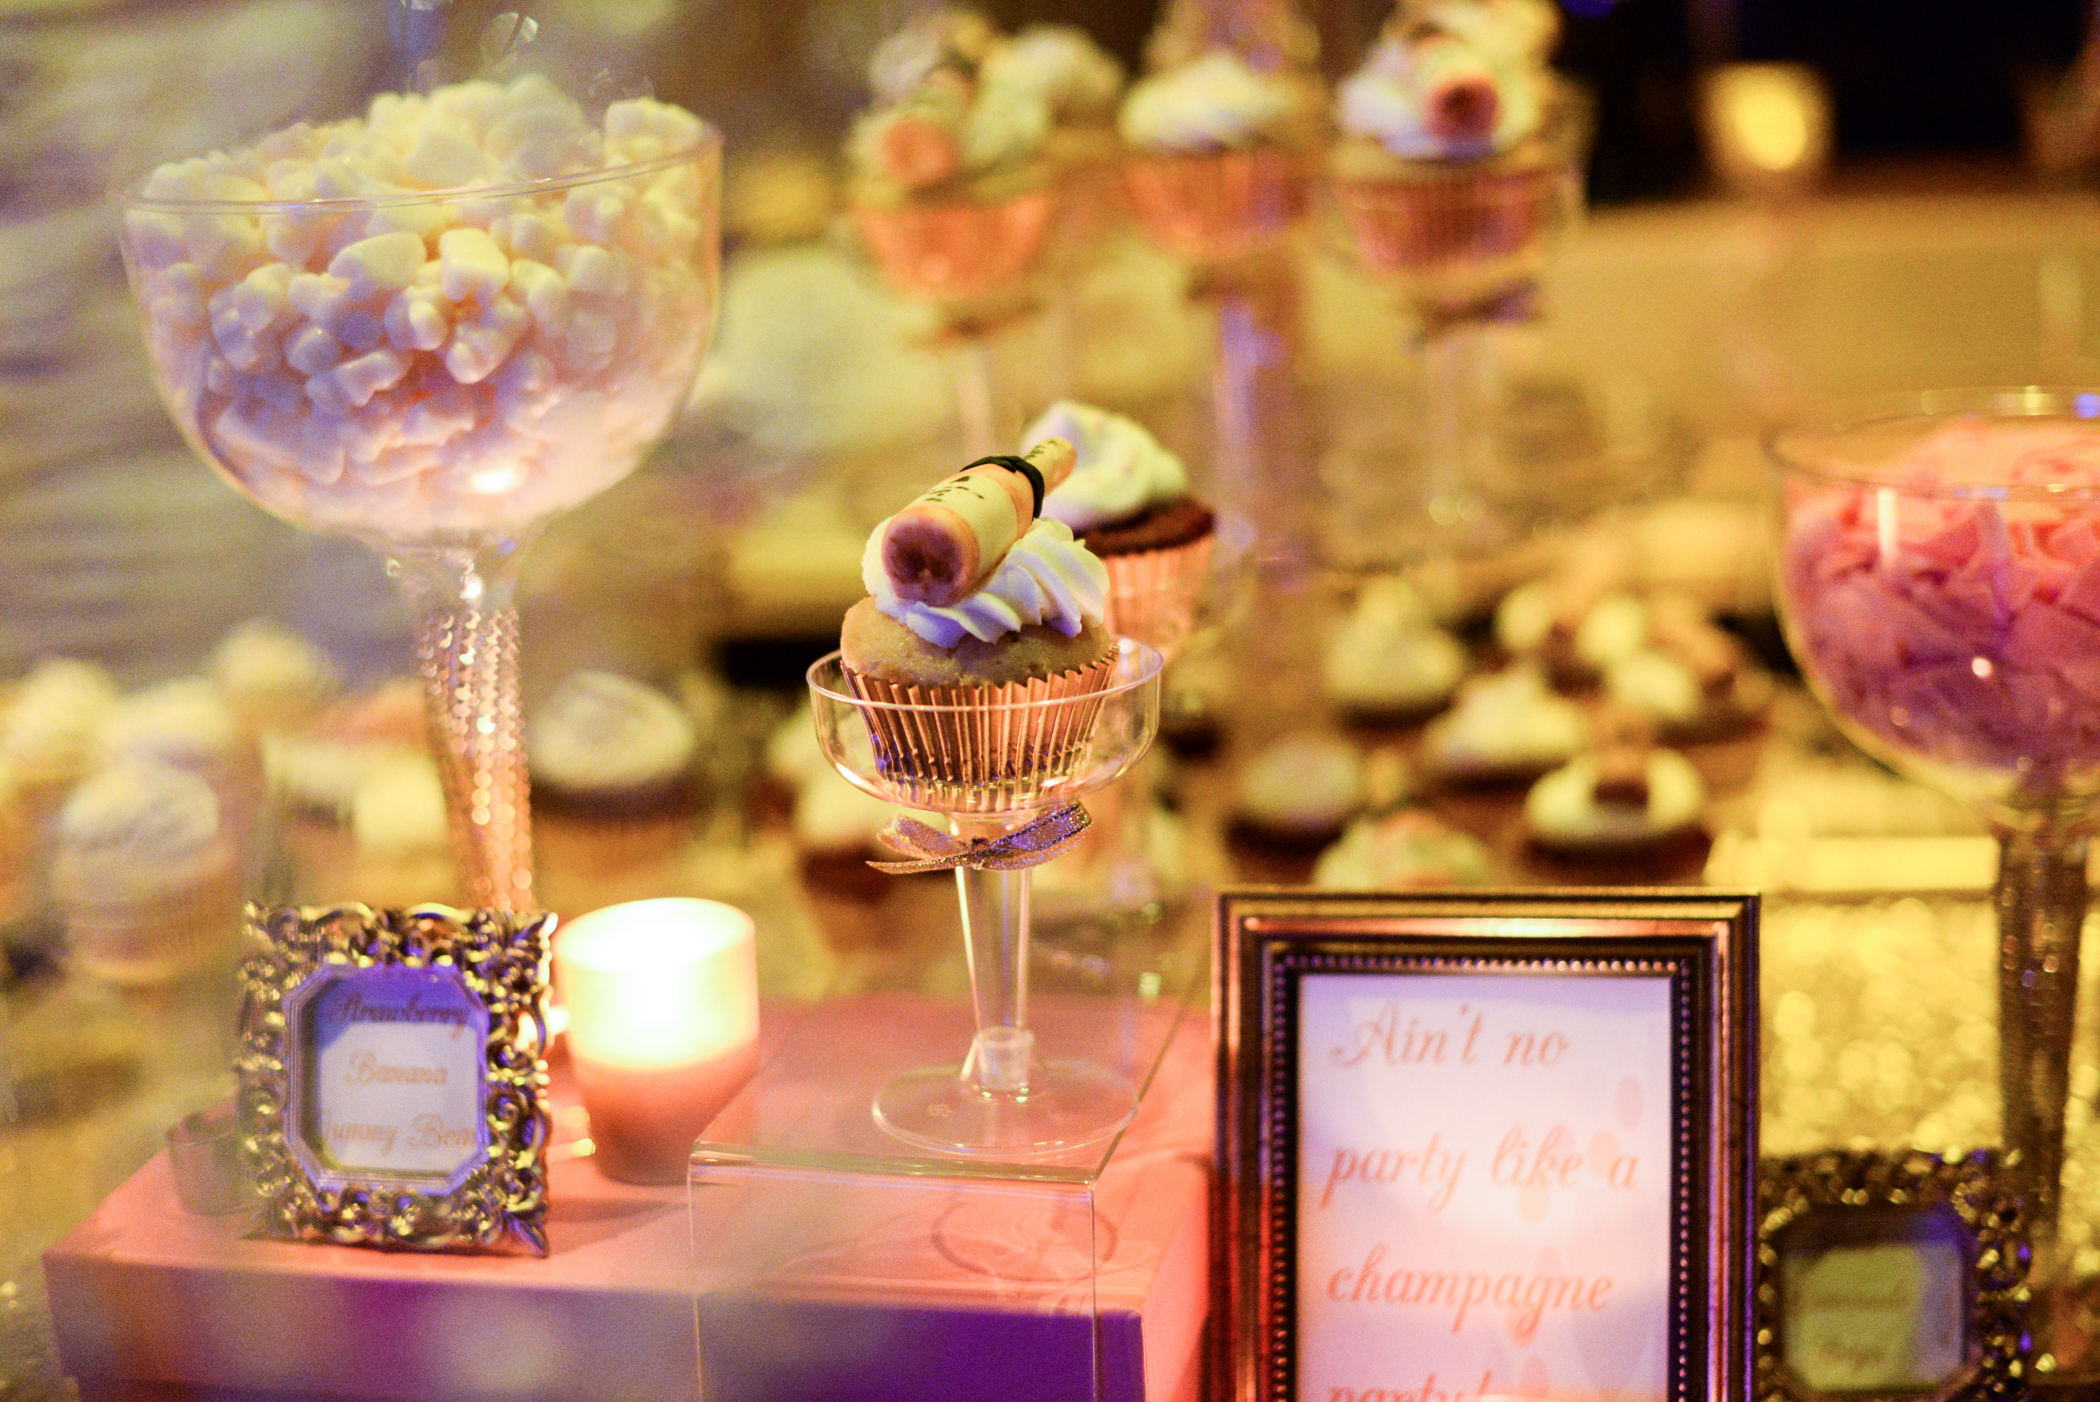 Champagne Party Details Small-26.JPG